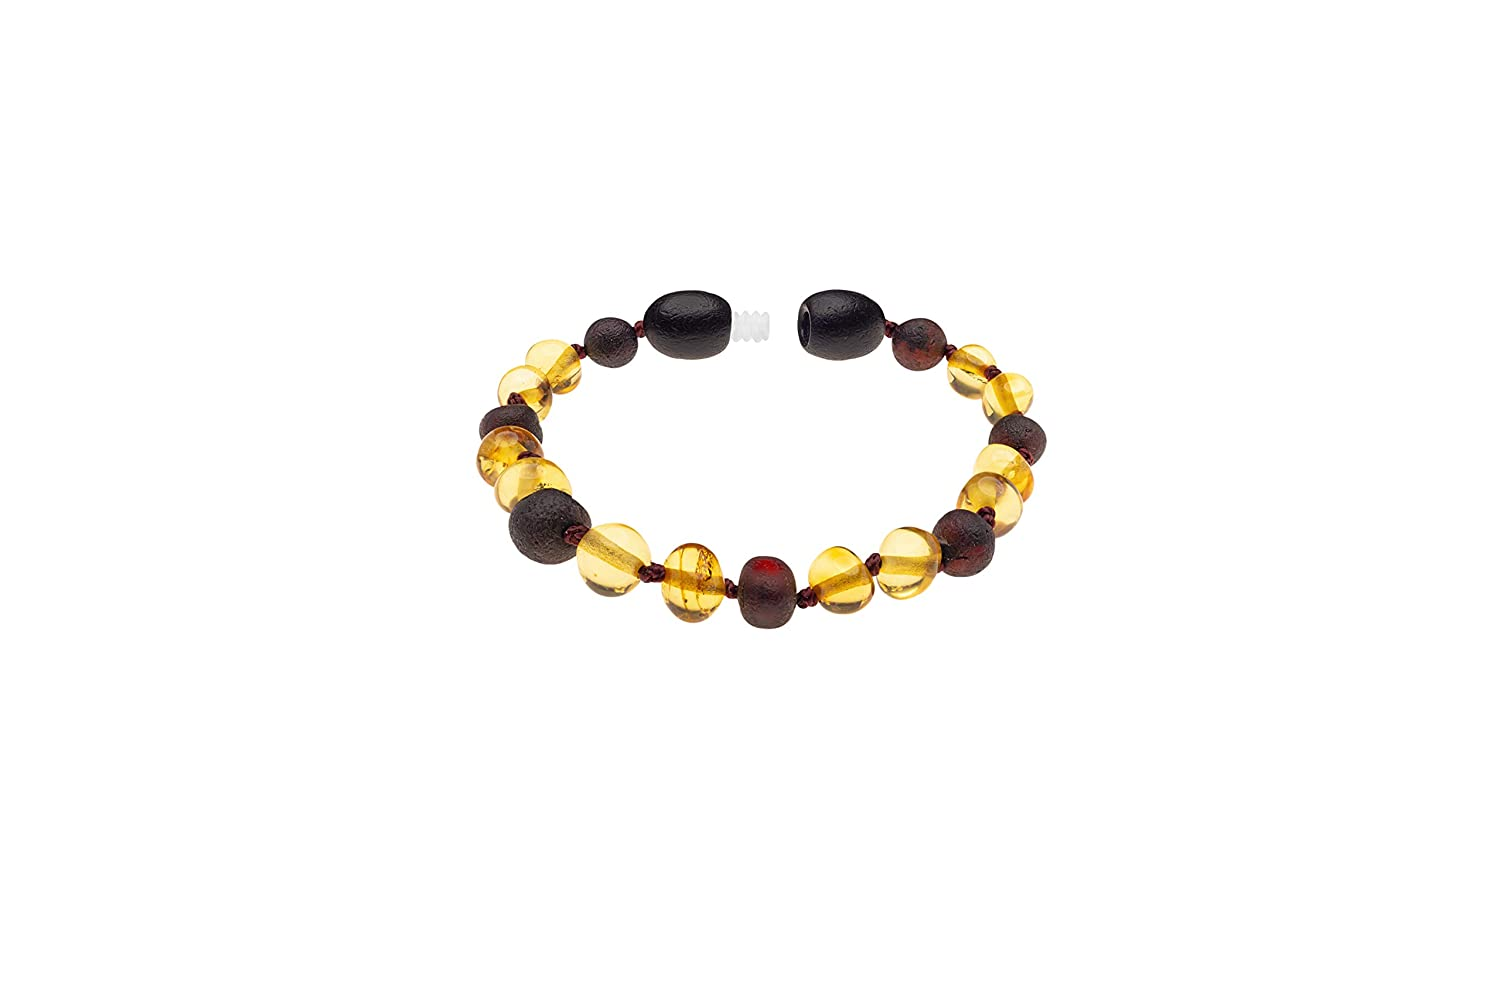 Baltic Amber Natural Necklace and Bracelet Made with Polished Honey and Unpolished Cherry Size 12.5 /& 5.5 Inches Kids AmberSky Polished Honey//Unpolished Cherry 32 /& 14 cm